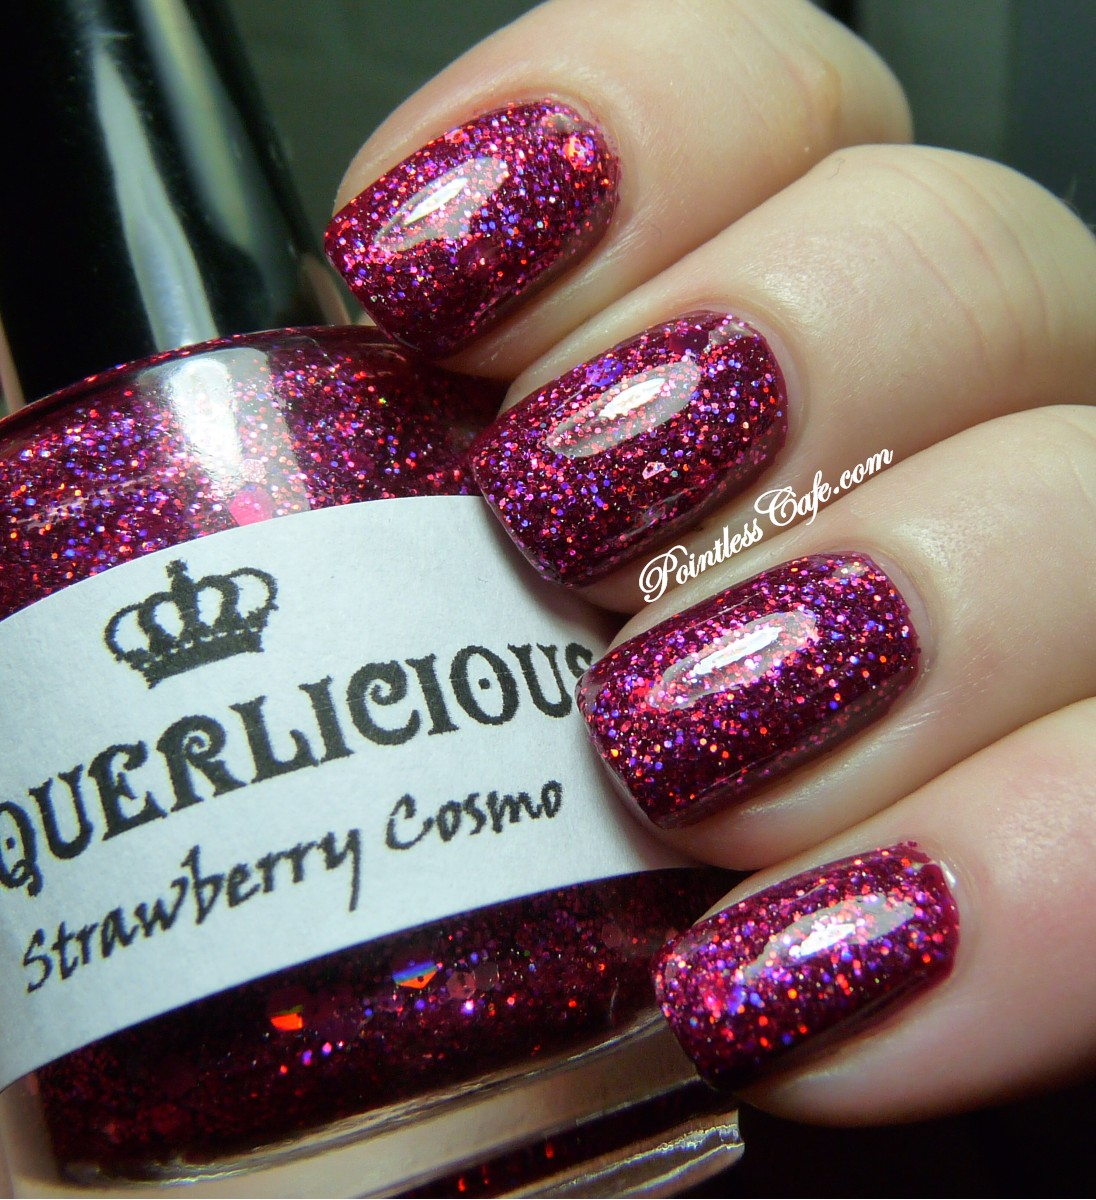 Laquerlicious Strawberry Cosmo - Swatches and Review | Pointless Cafe